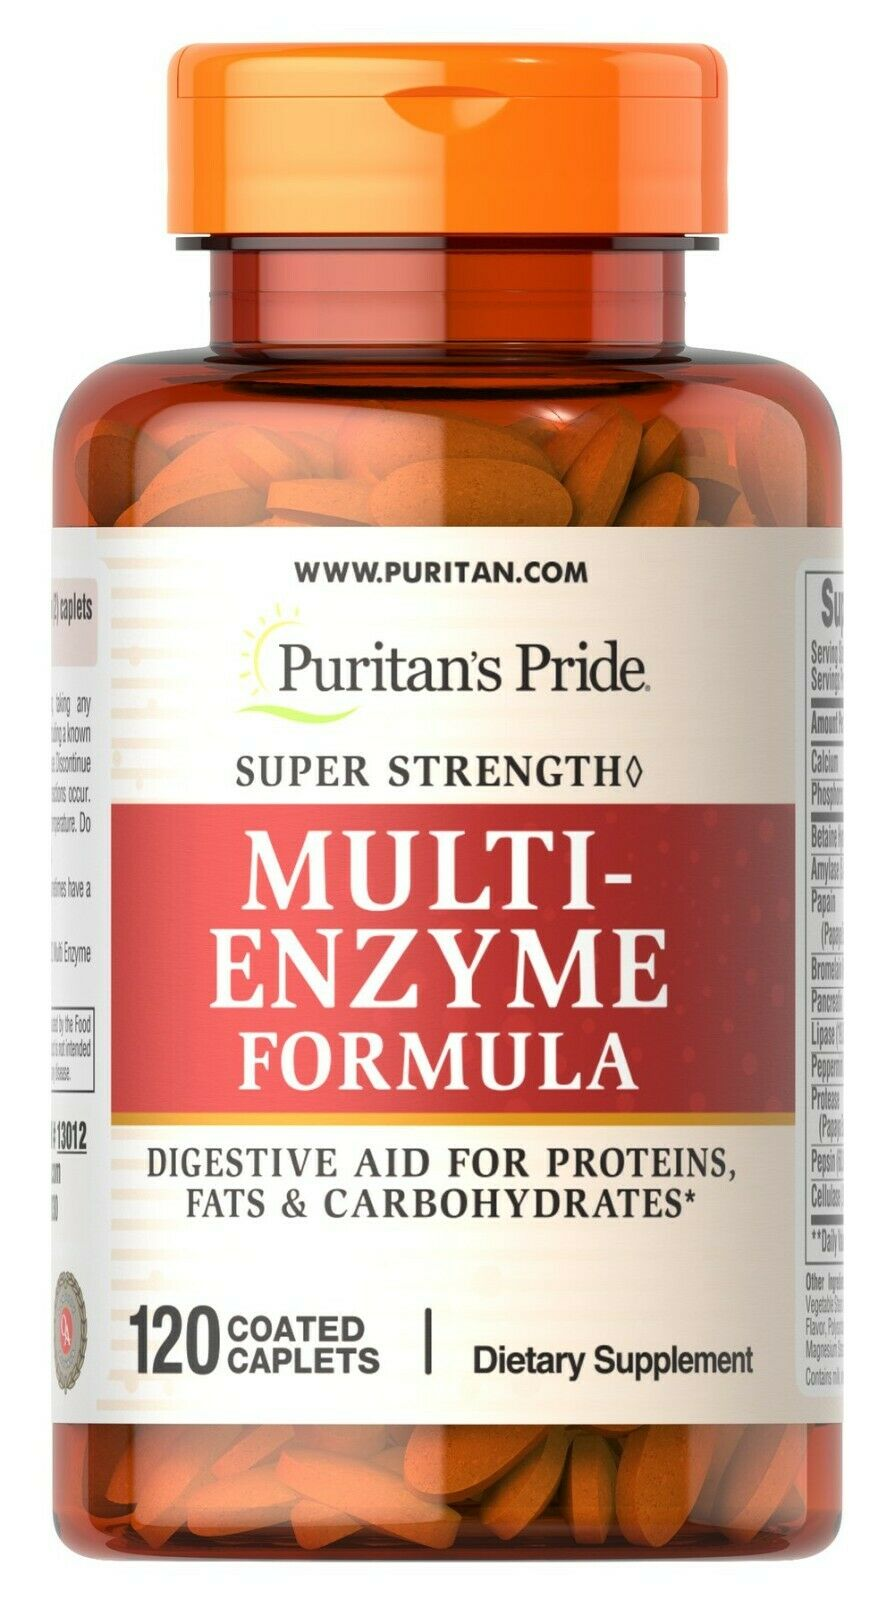 Puritan's Pride Super Strength Multi Enzyme Formula 120 Coated Caplets